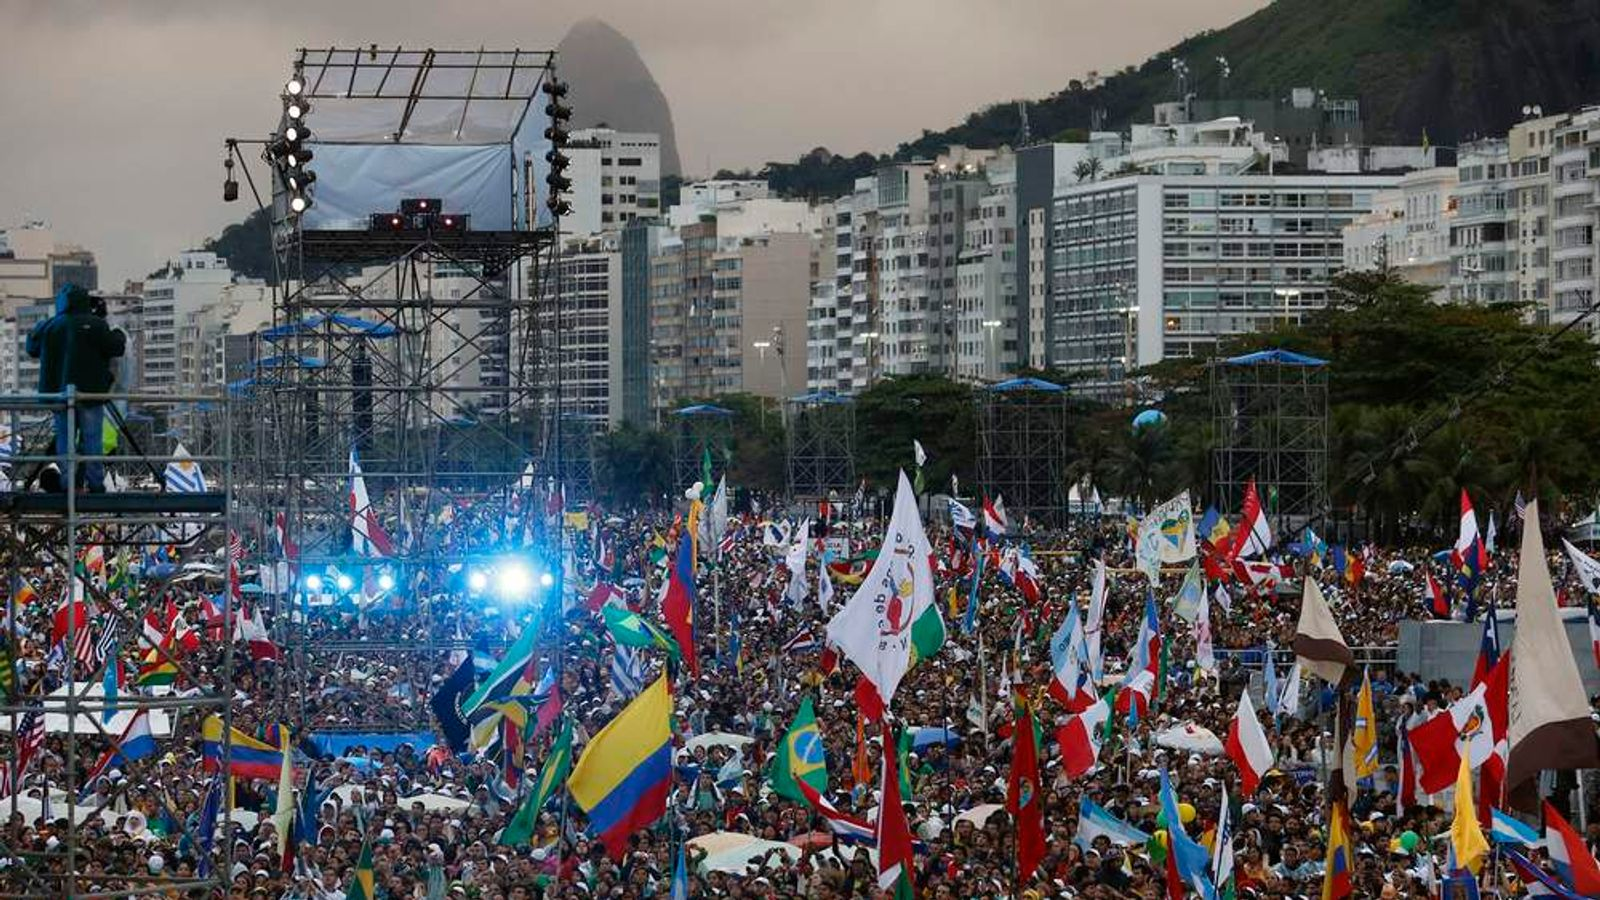 People crowd Copacabana beach as they wait for Pope Francis in Rio de Janeiro